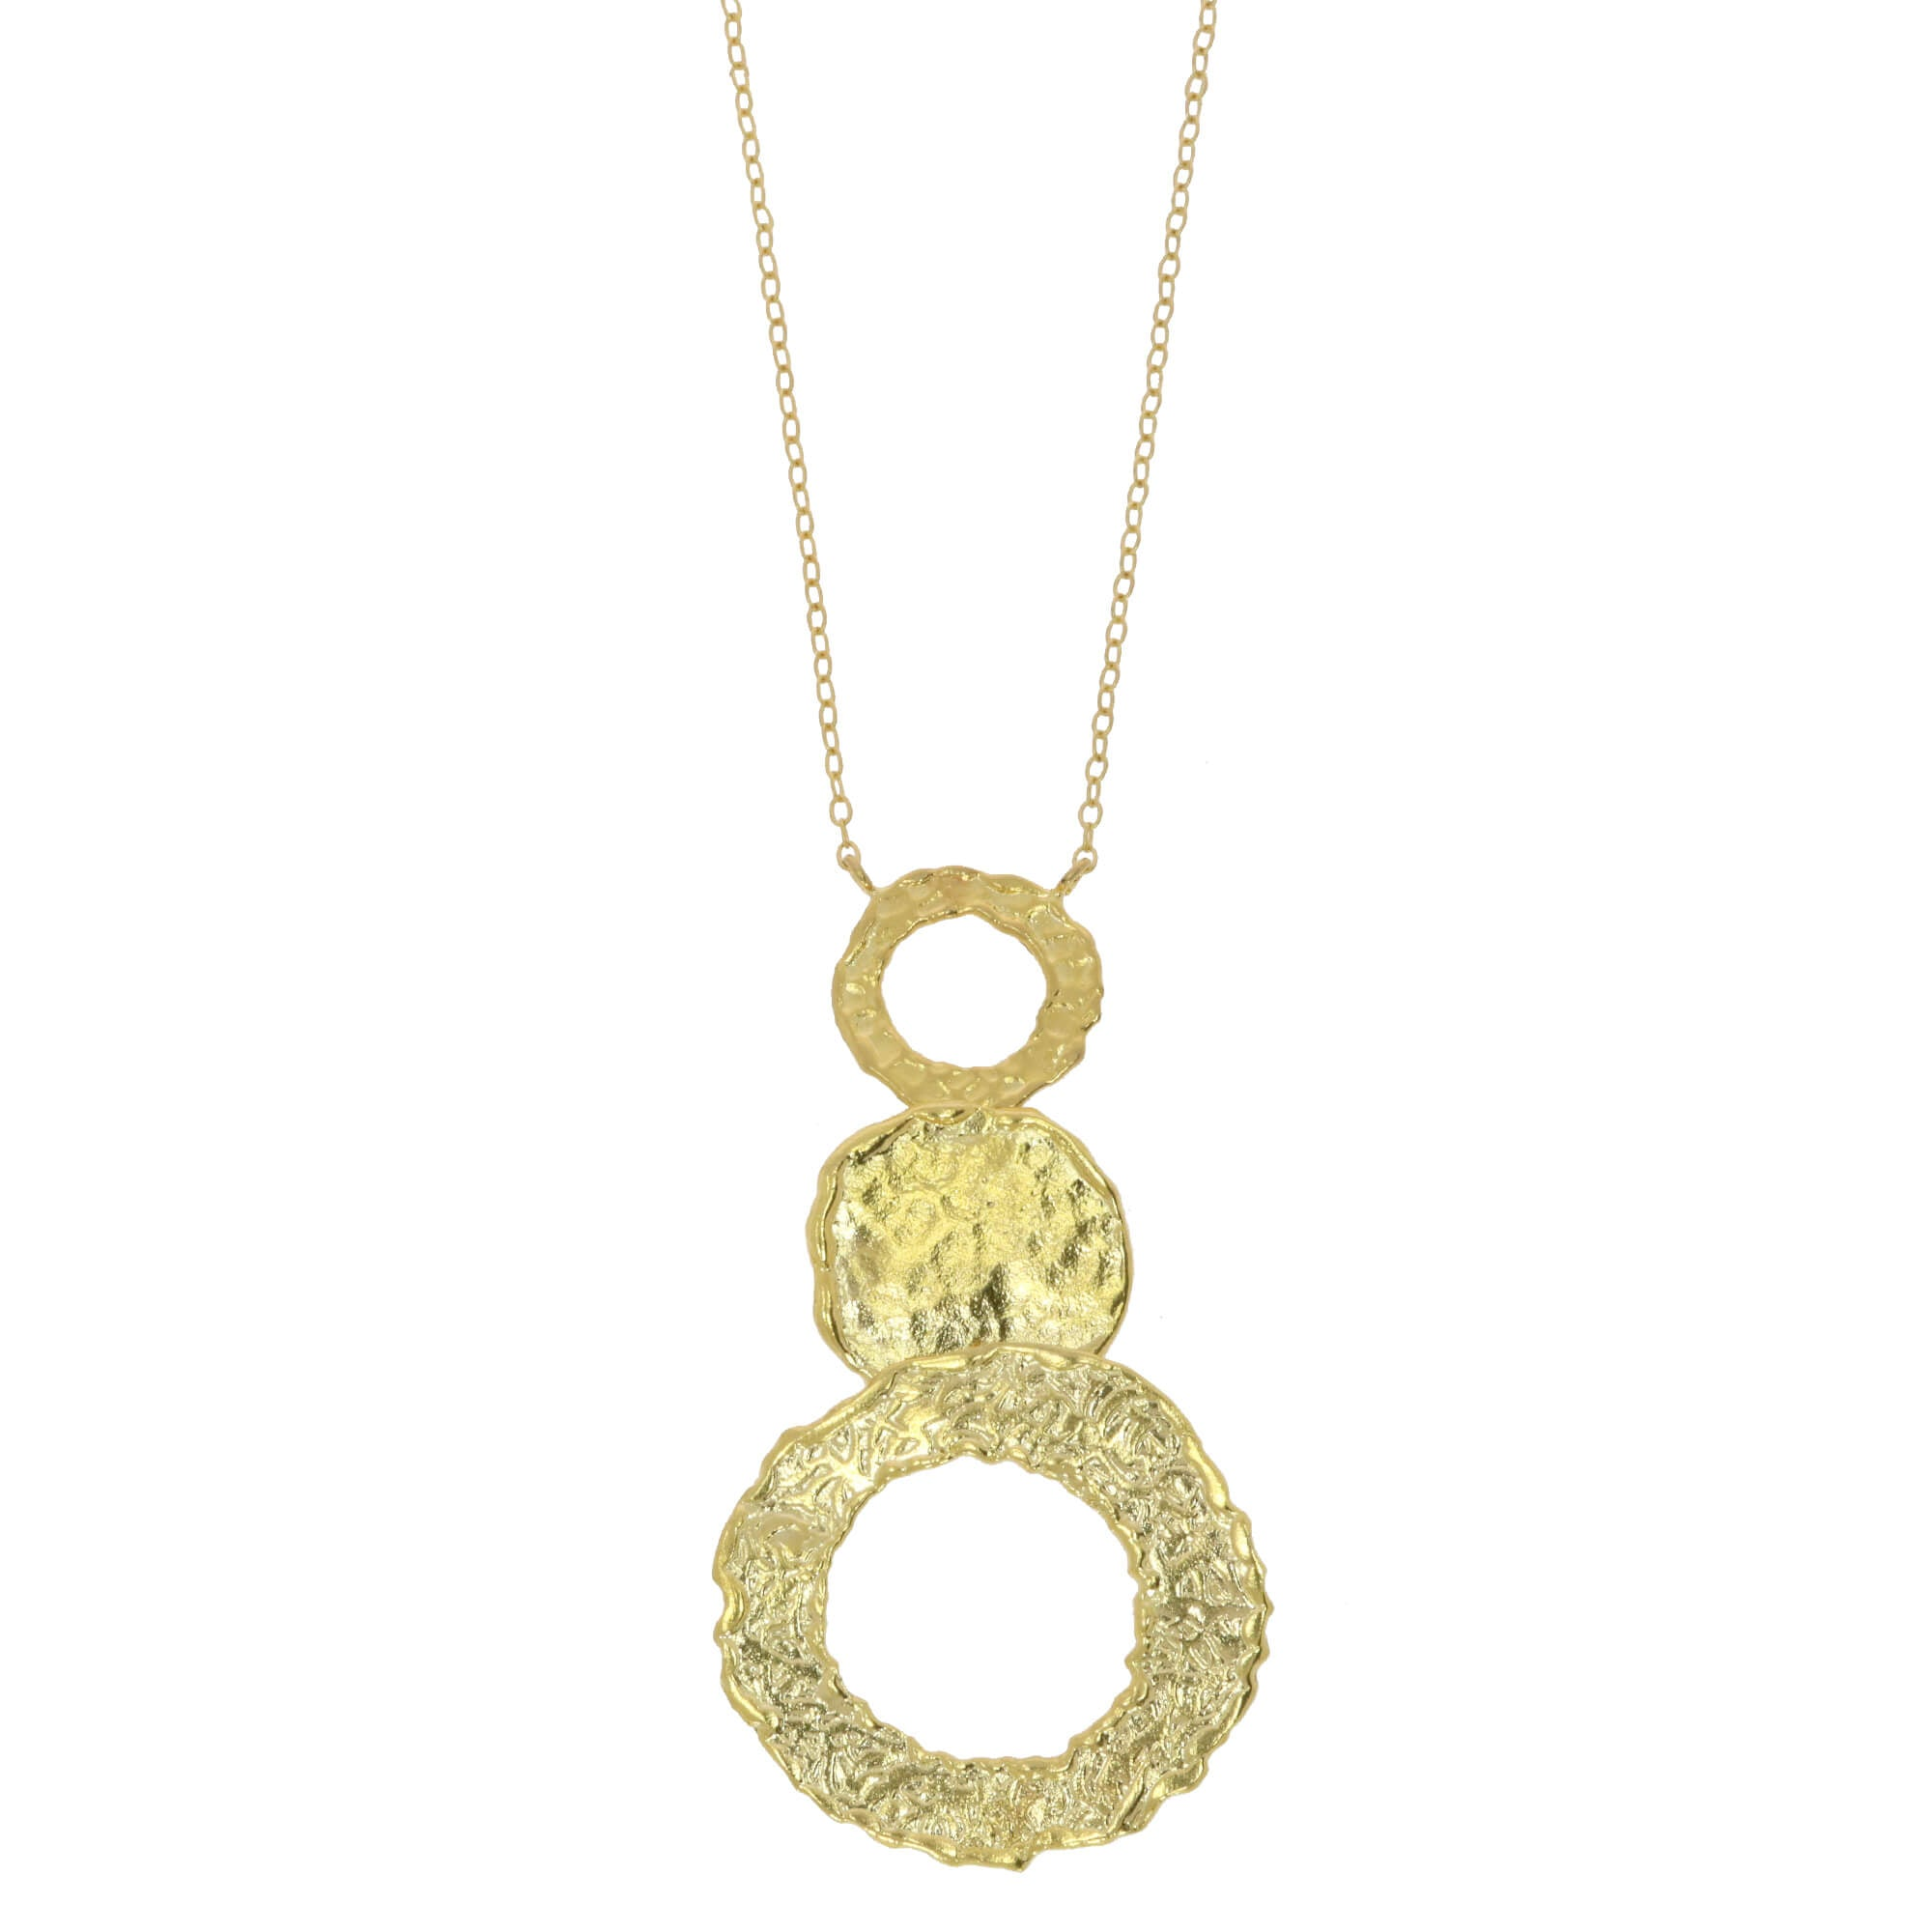 OTTOMAN DI14 Circles necklace in gold